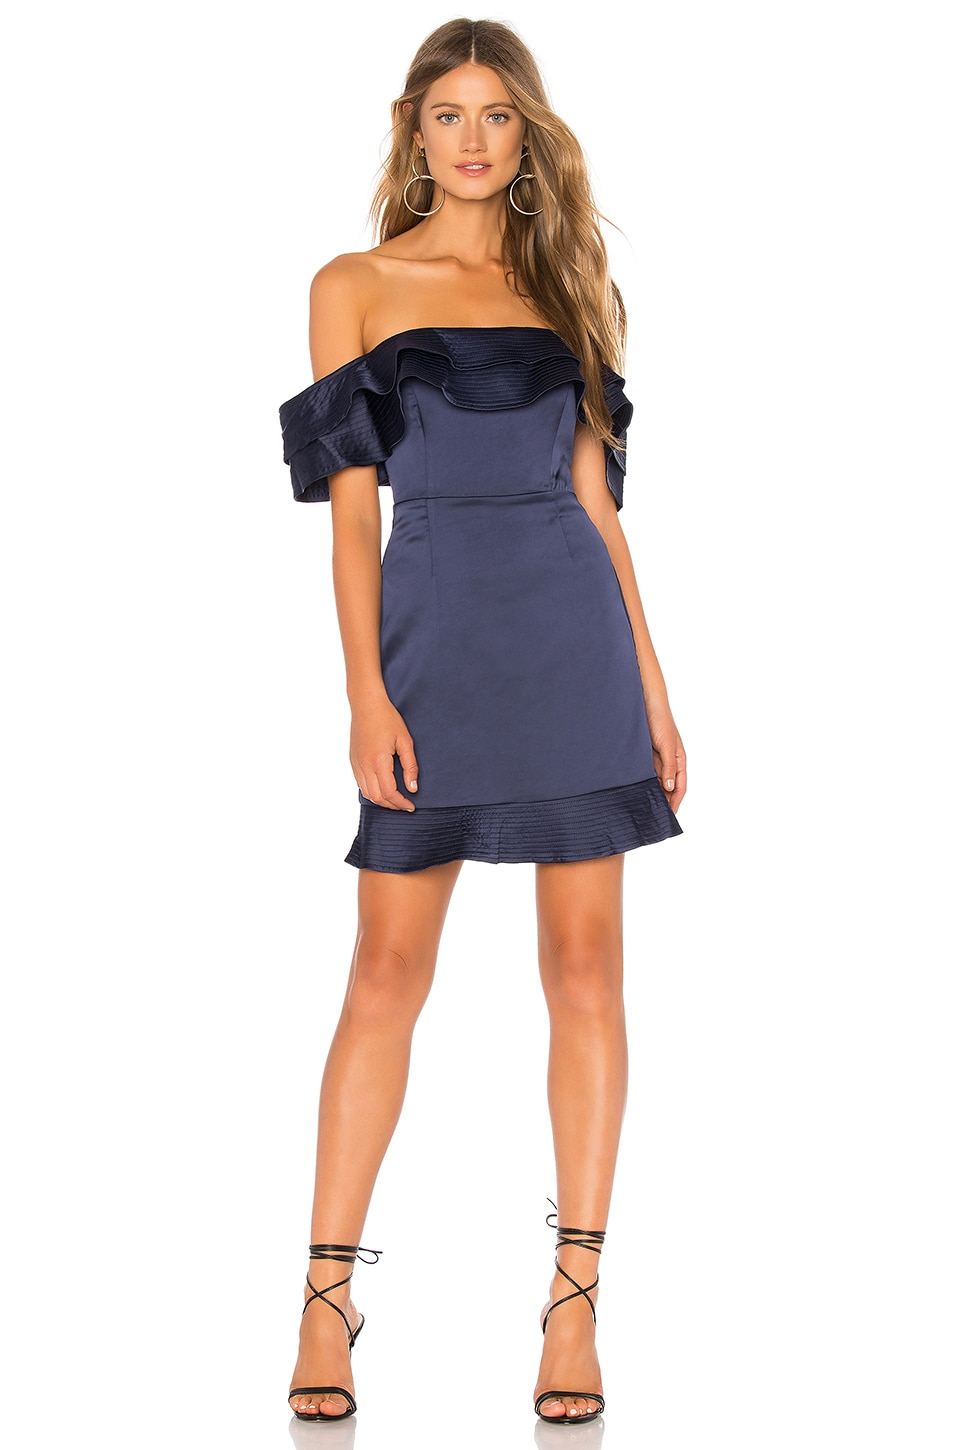 Bardot Athena Frill Dress in Deep Navy